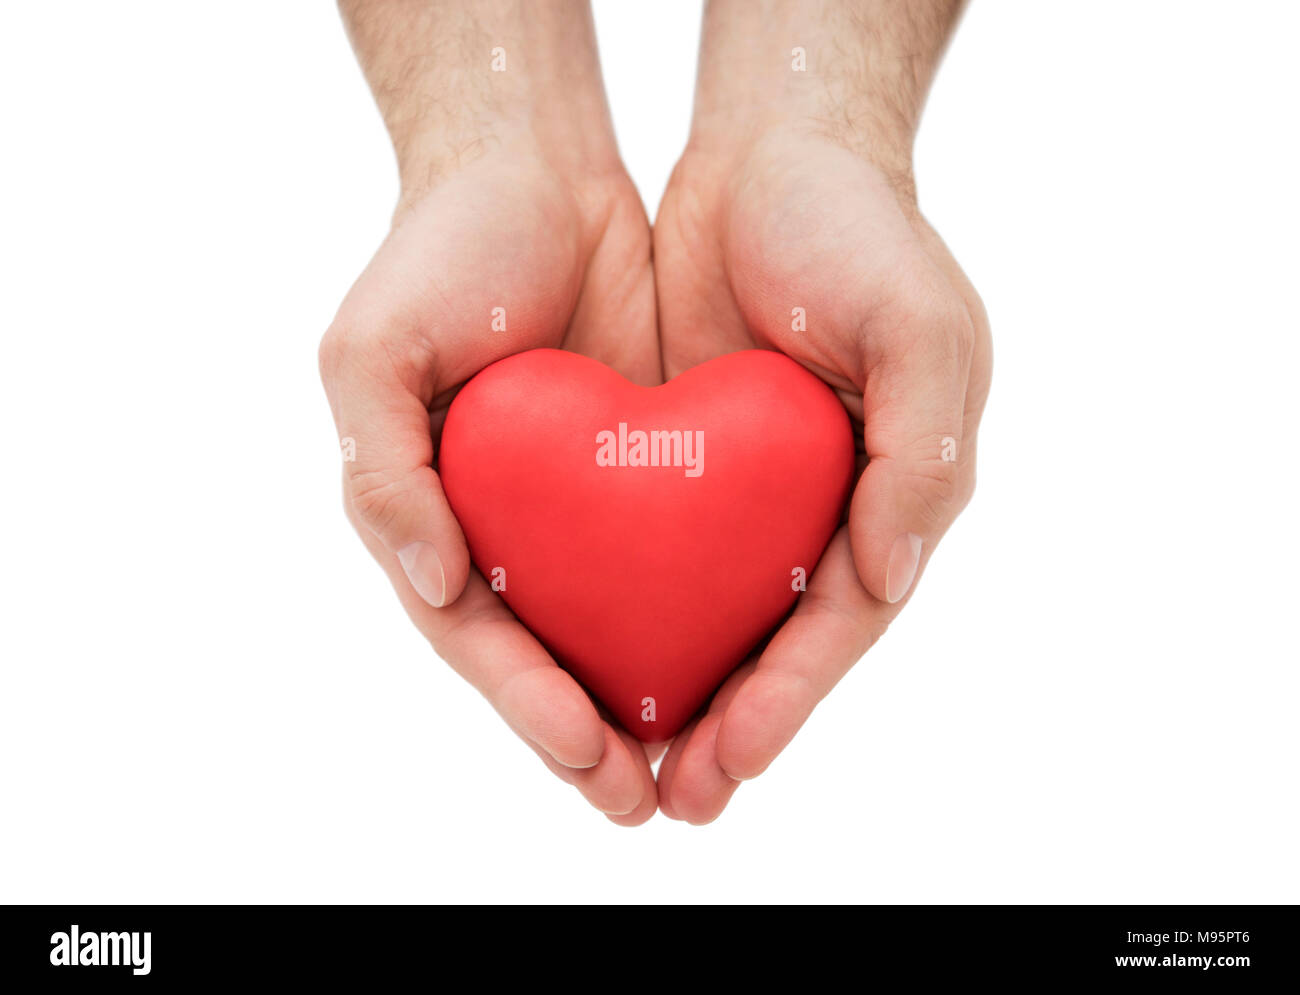 Red heart in man's hands. Health insurance or love concept - Stock Image